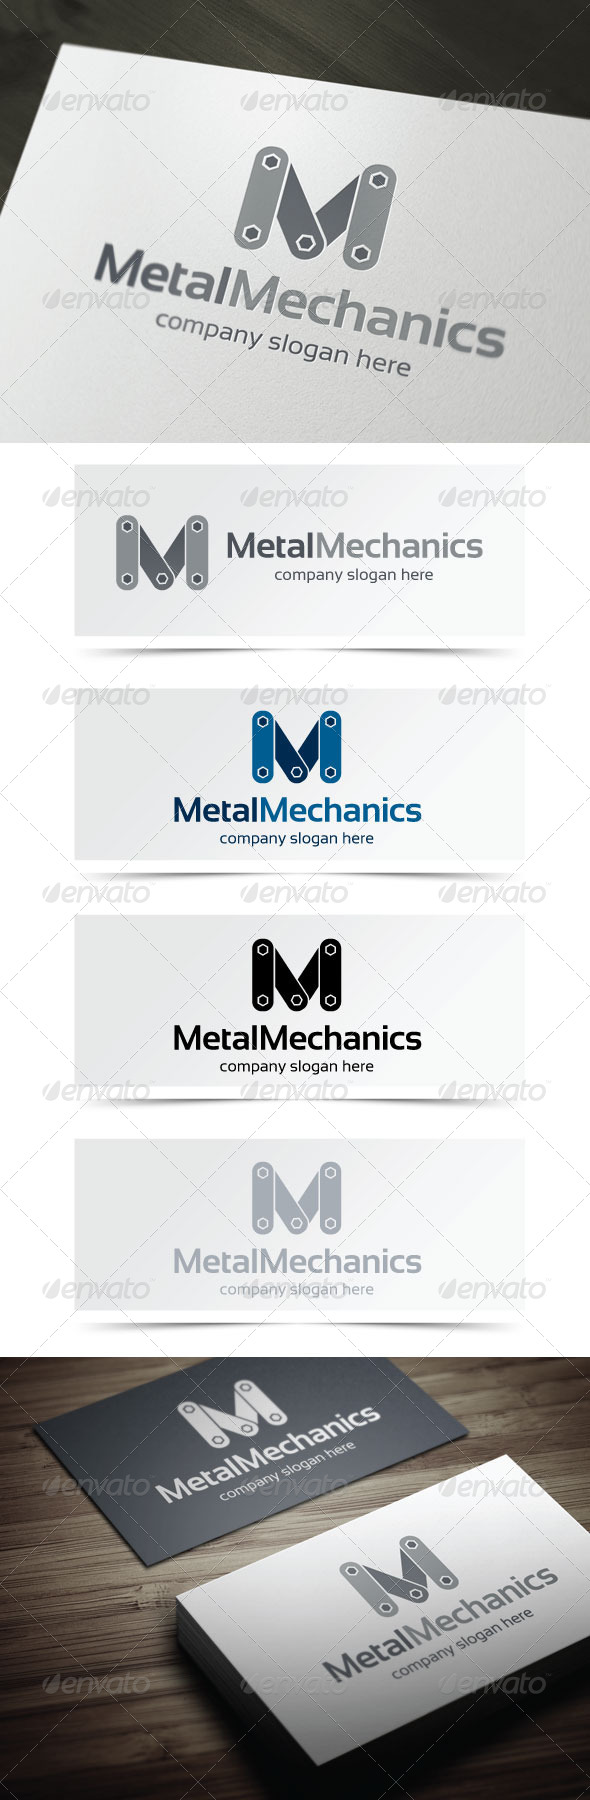 GraphicRiver Metal Mechanics 5142270